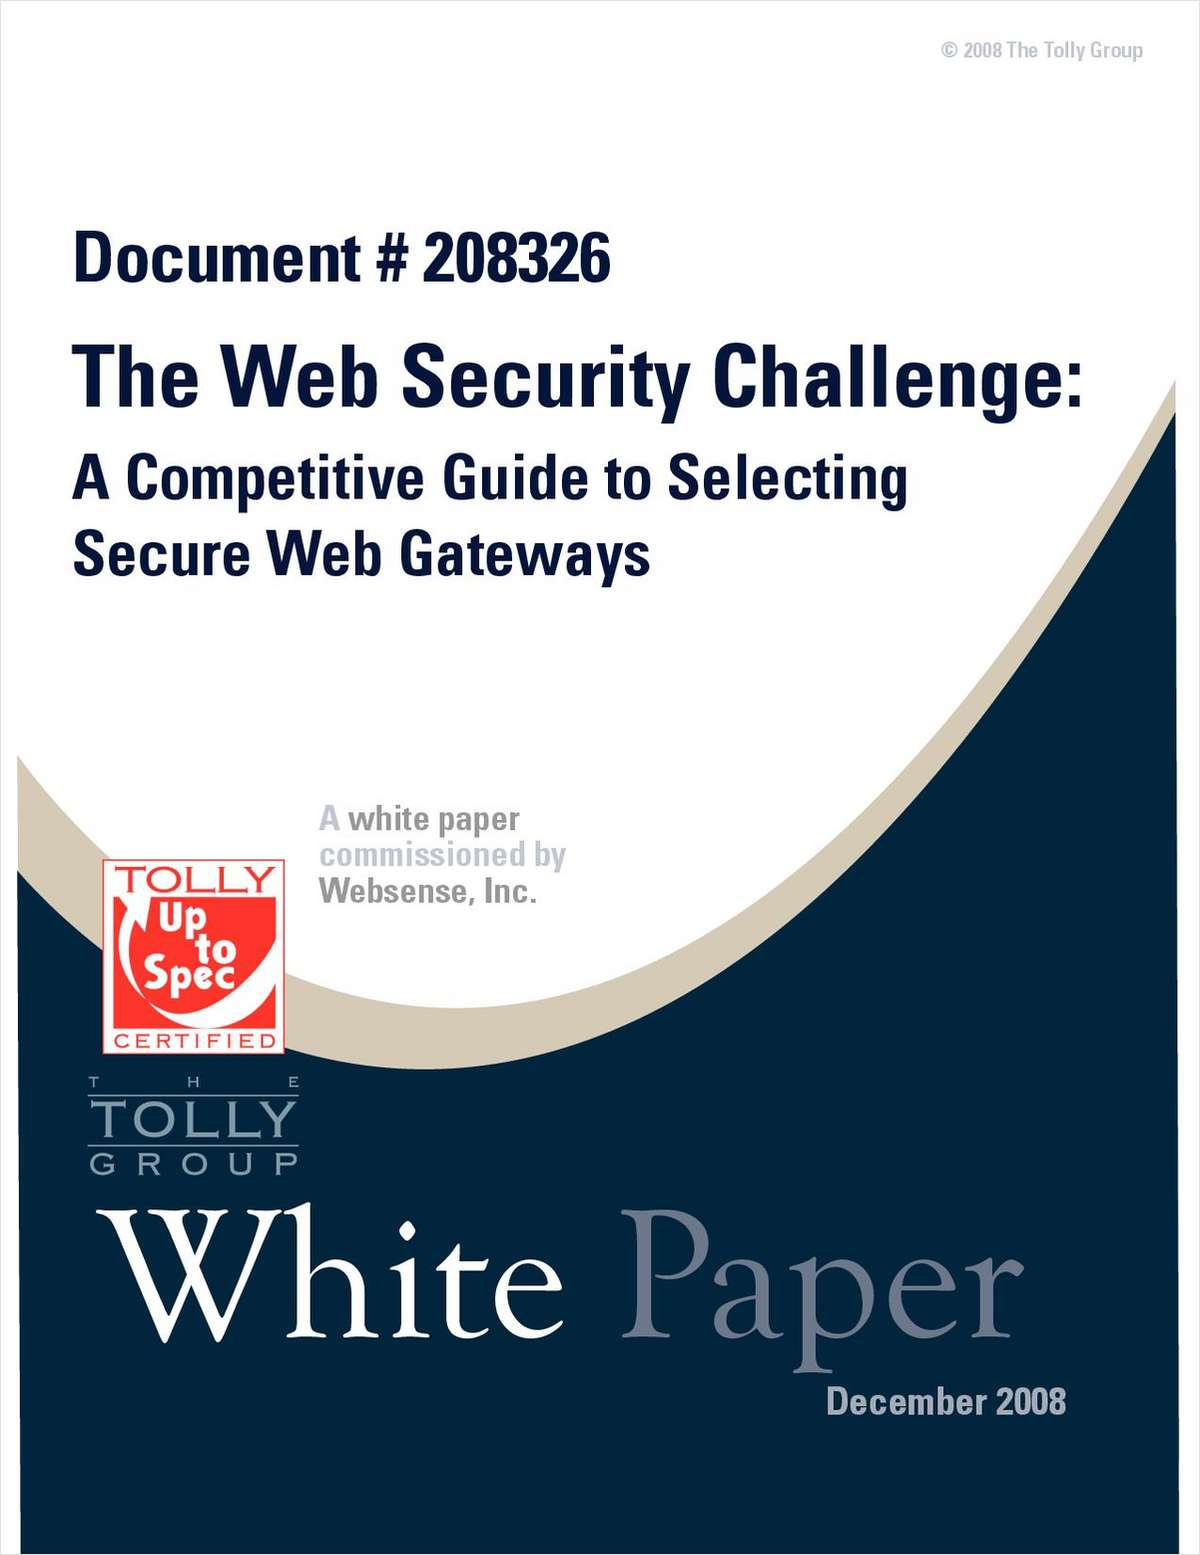 The Web Security Challenge:  A Competitive Guide to Selecting Secure Web Gateways